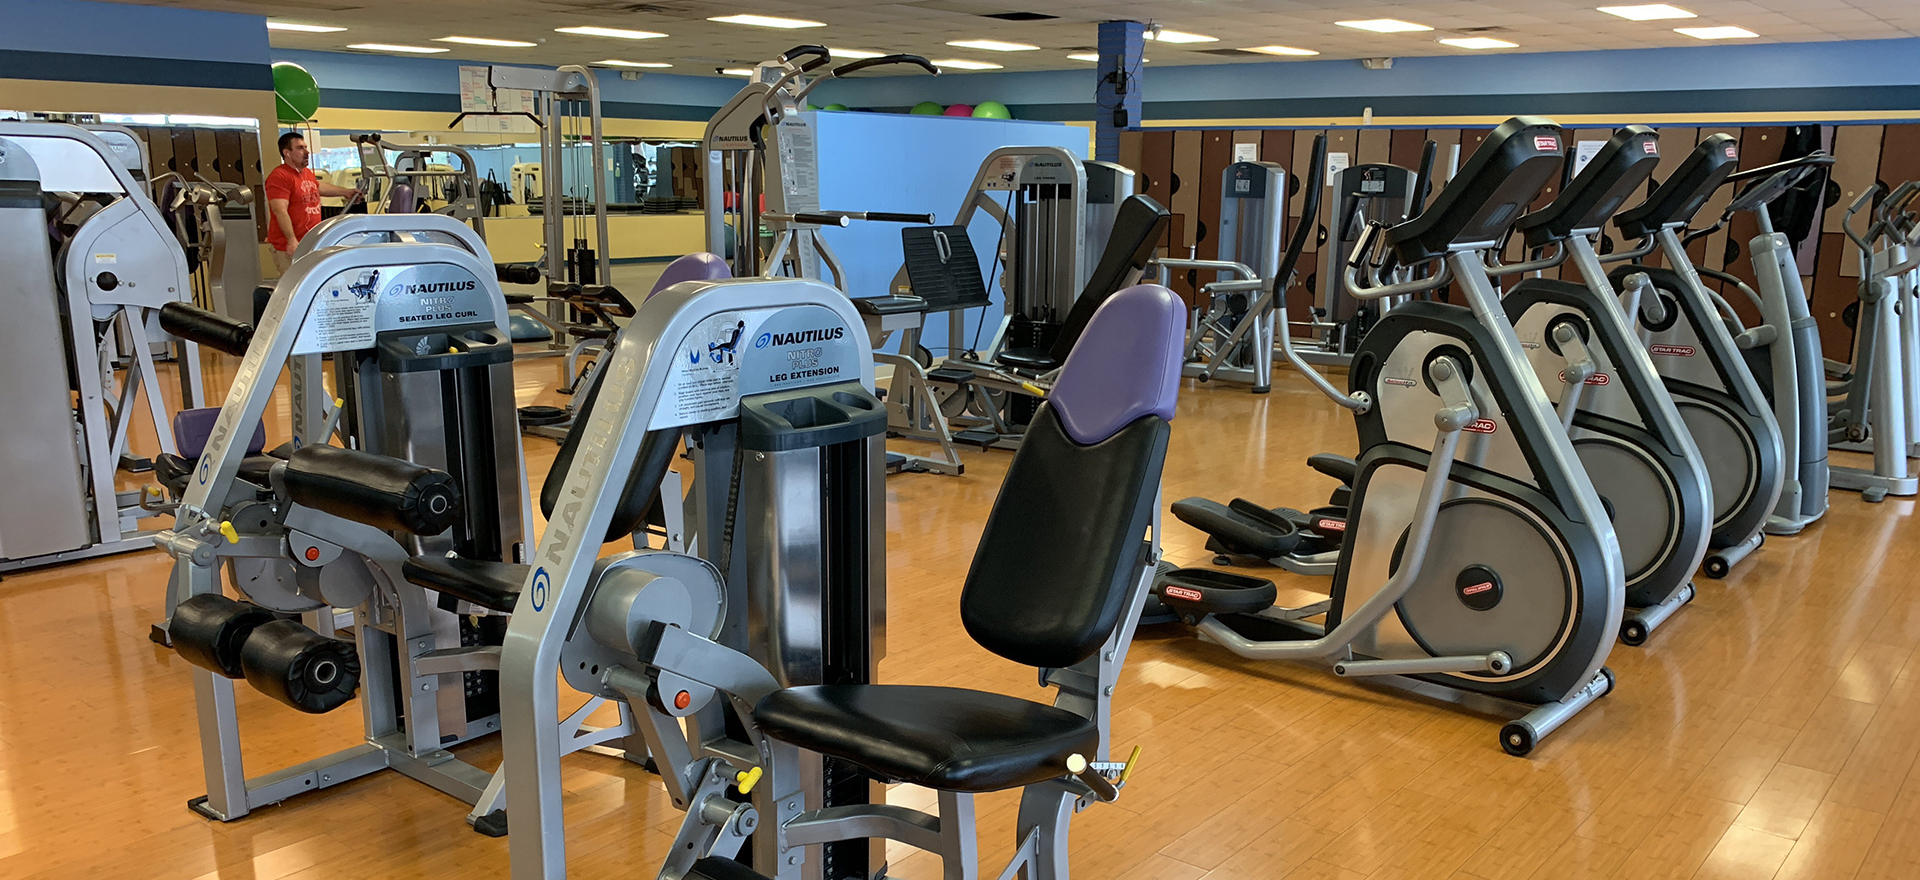 Family fitness center gym of norton shores amenities facilities and